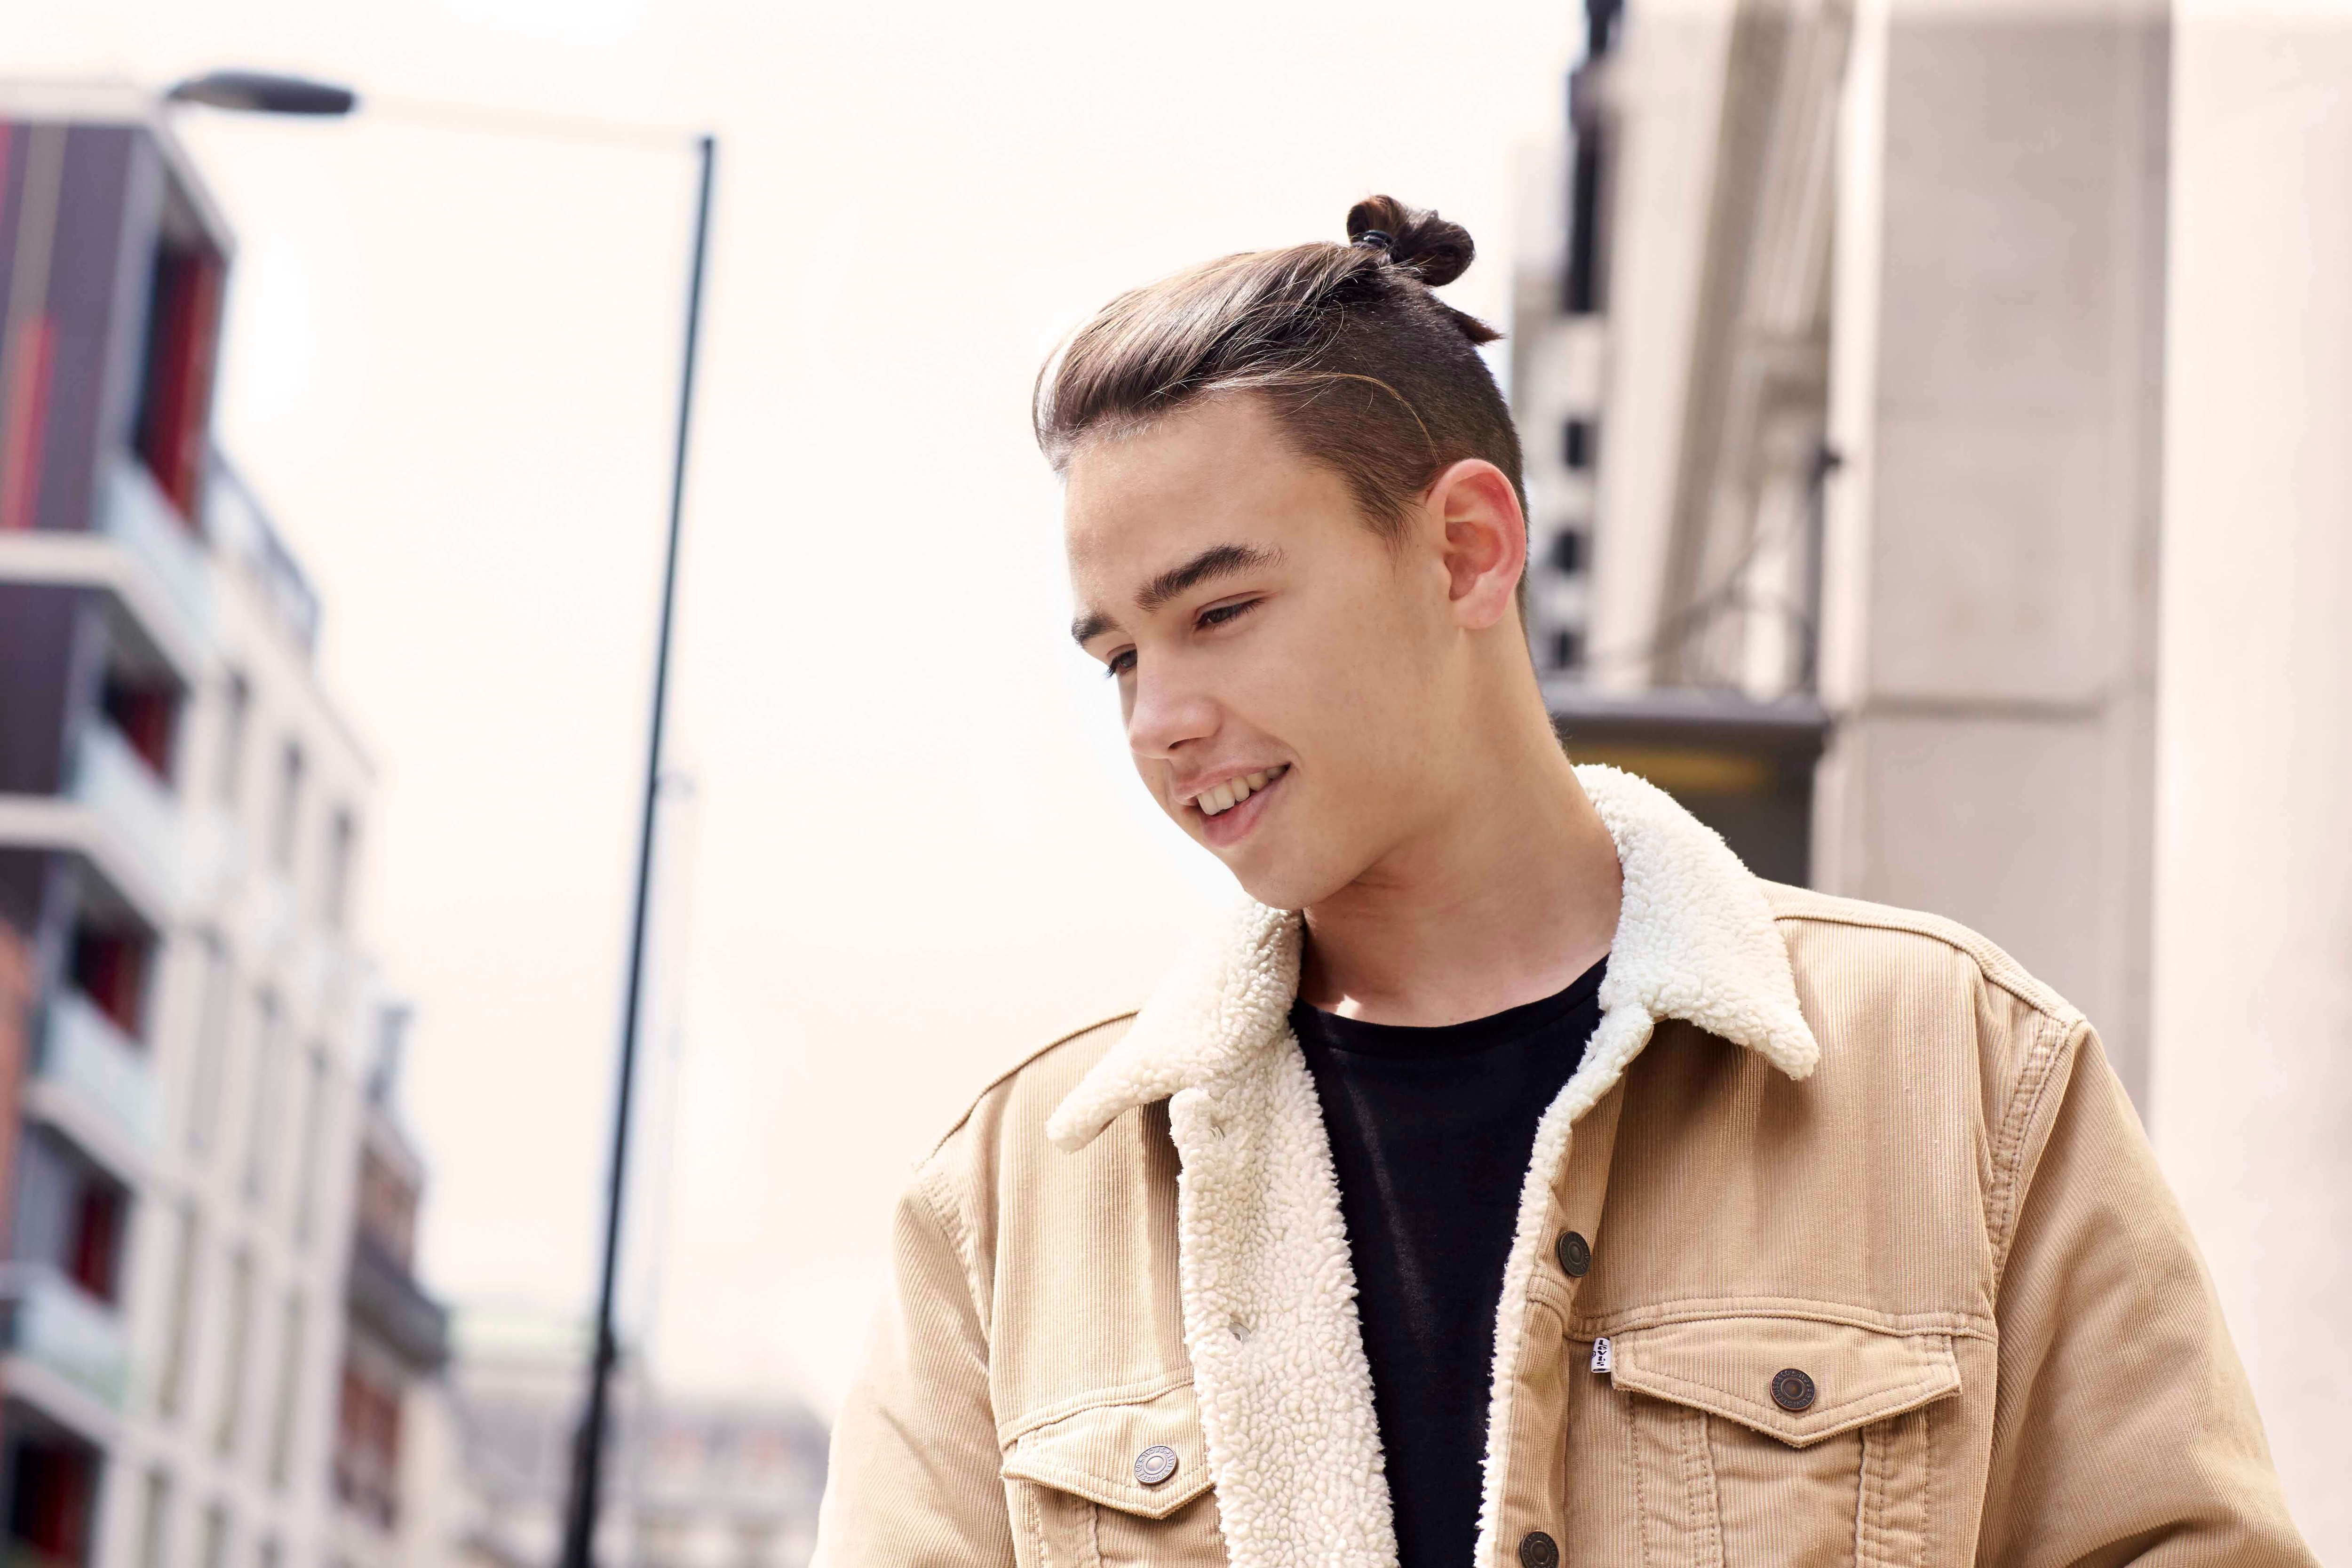 Man Bun Fade 5 Hairstyles To Try For A Formal Event